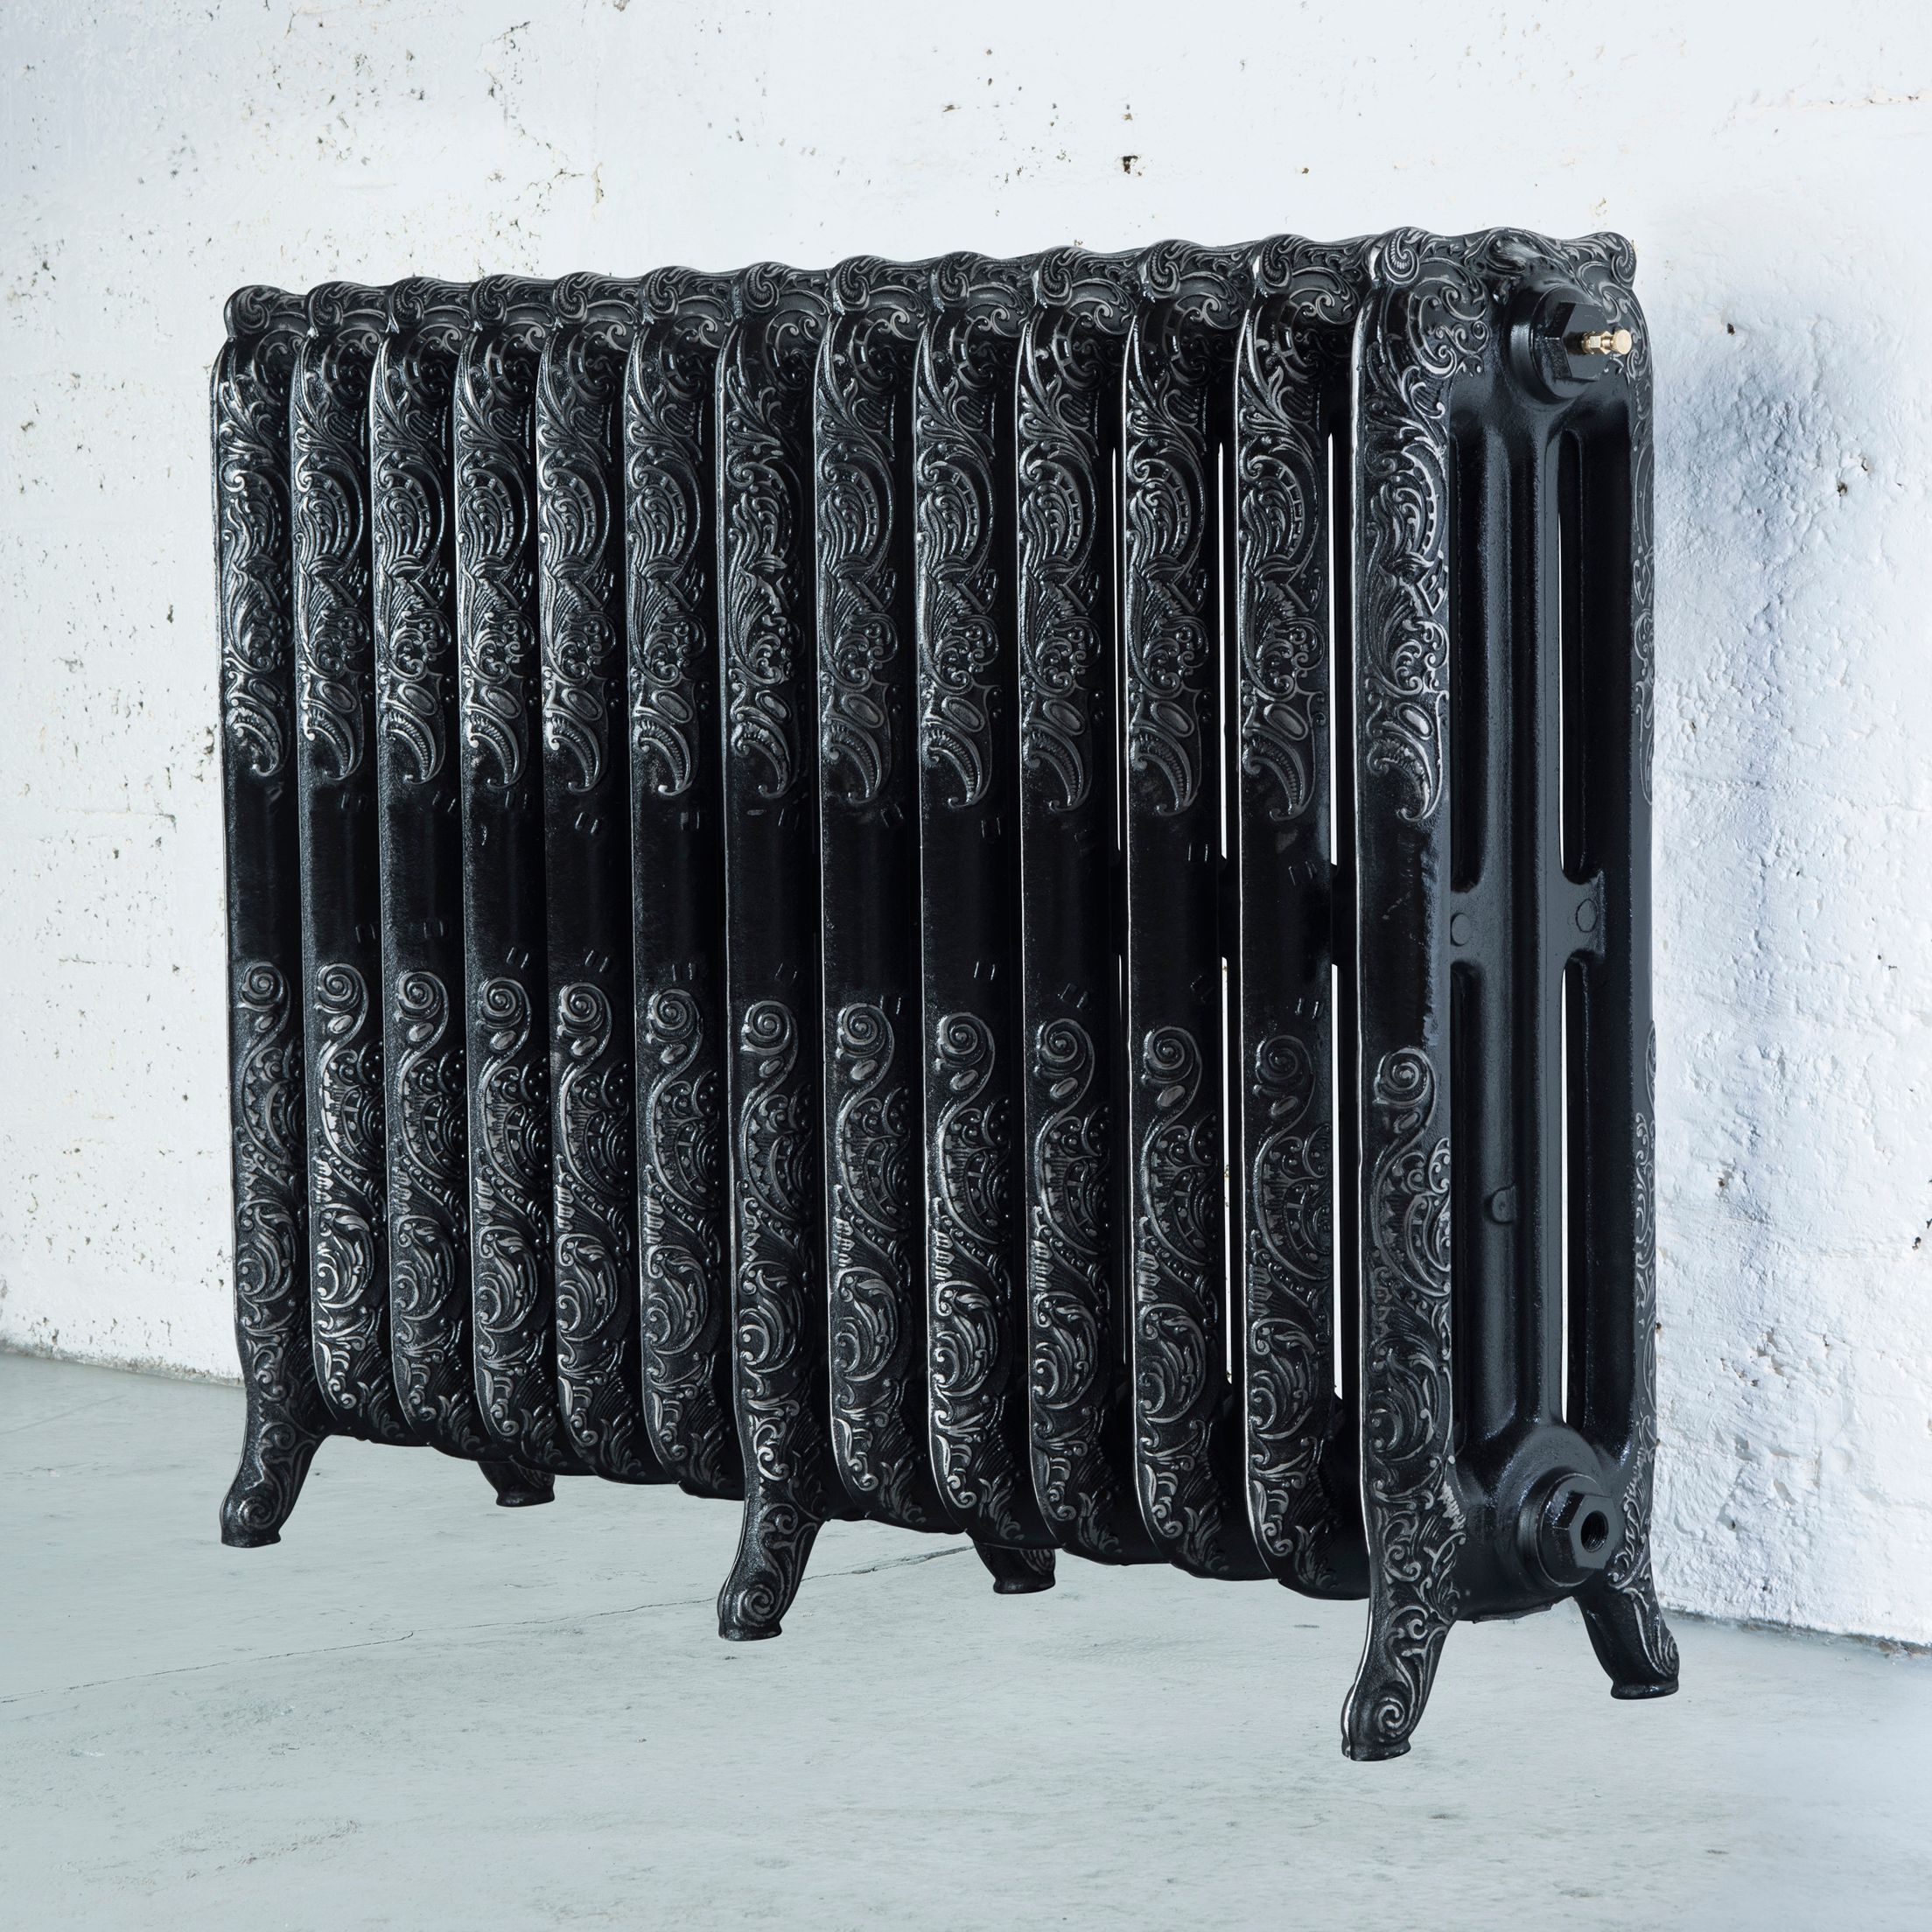 Arroll Montmartre 3 Column Radiator, Black with Silver